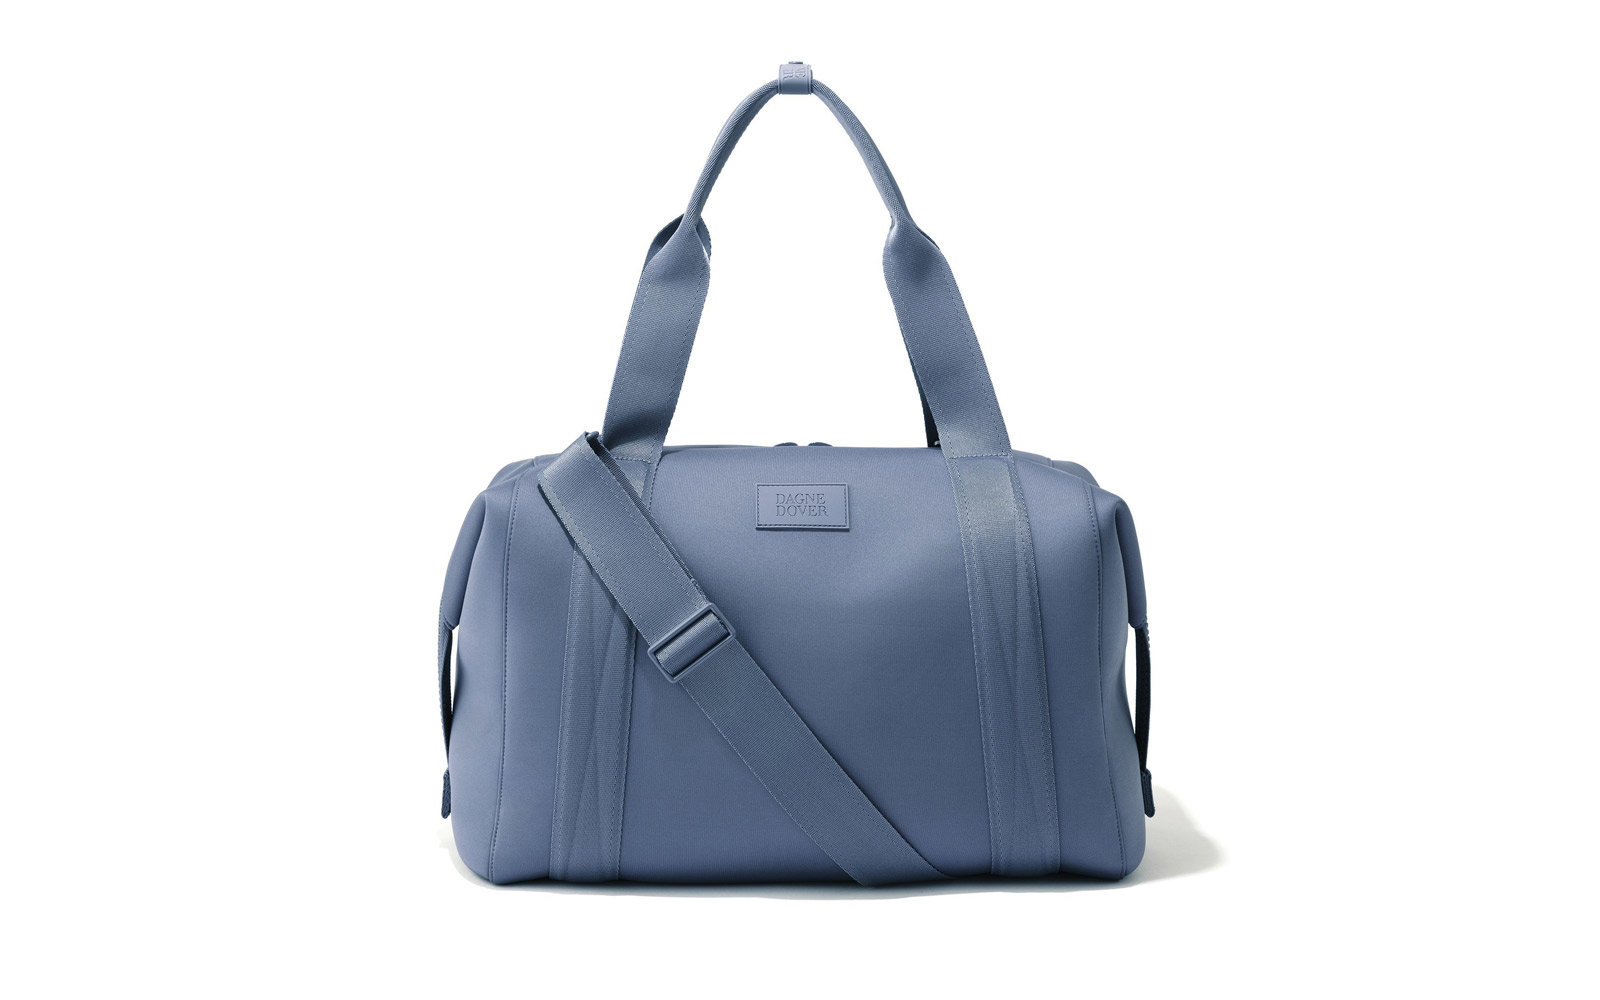 a16baf9616 Dagne Dover Landon Carryall in Large. Weekender Bags